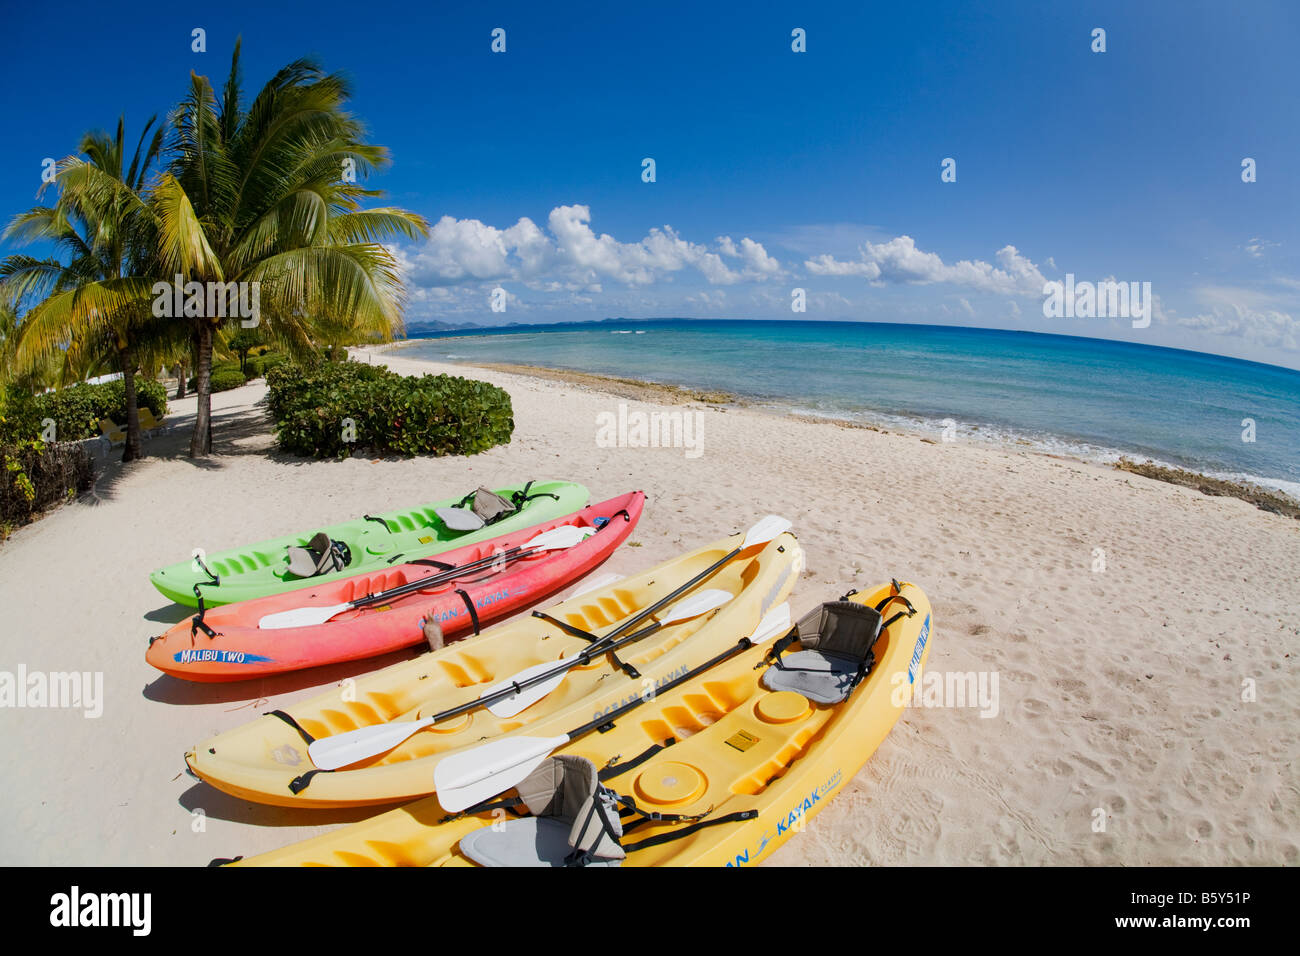 Ocean kayaks on Shoal Bay West beach on the caribbean island of Anguilla in the British West Indies Stock Photo